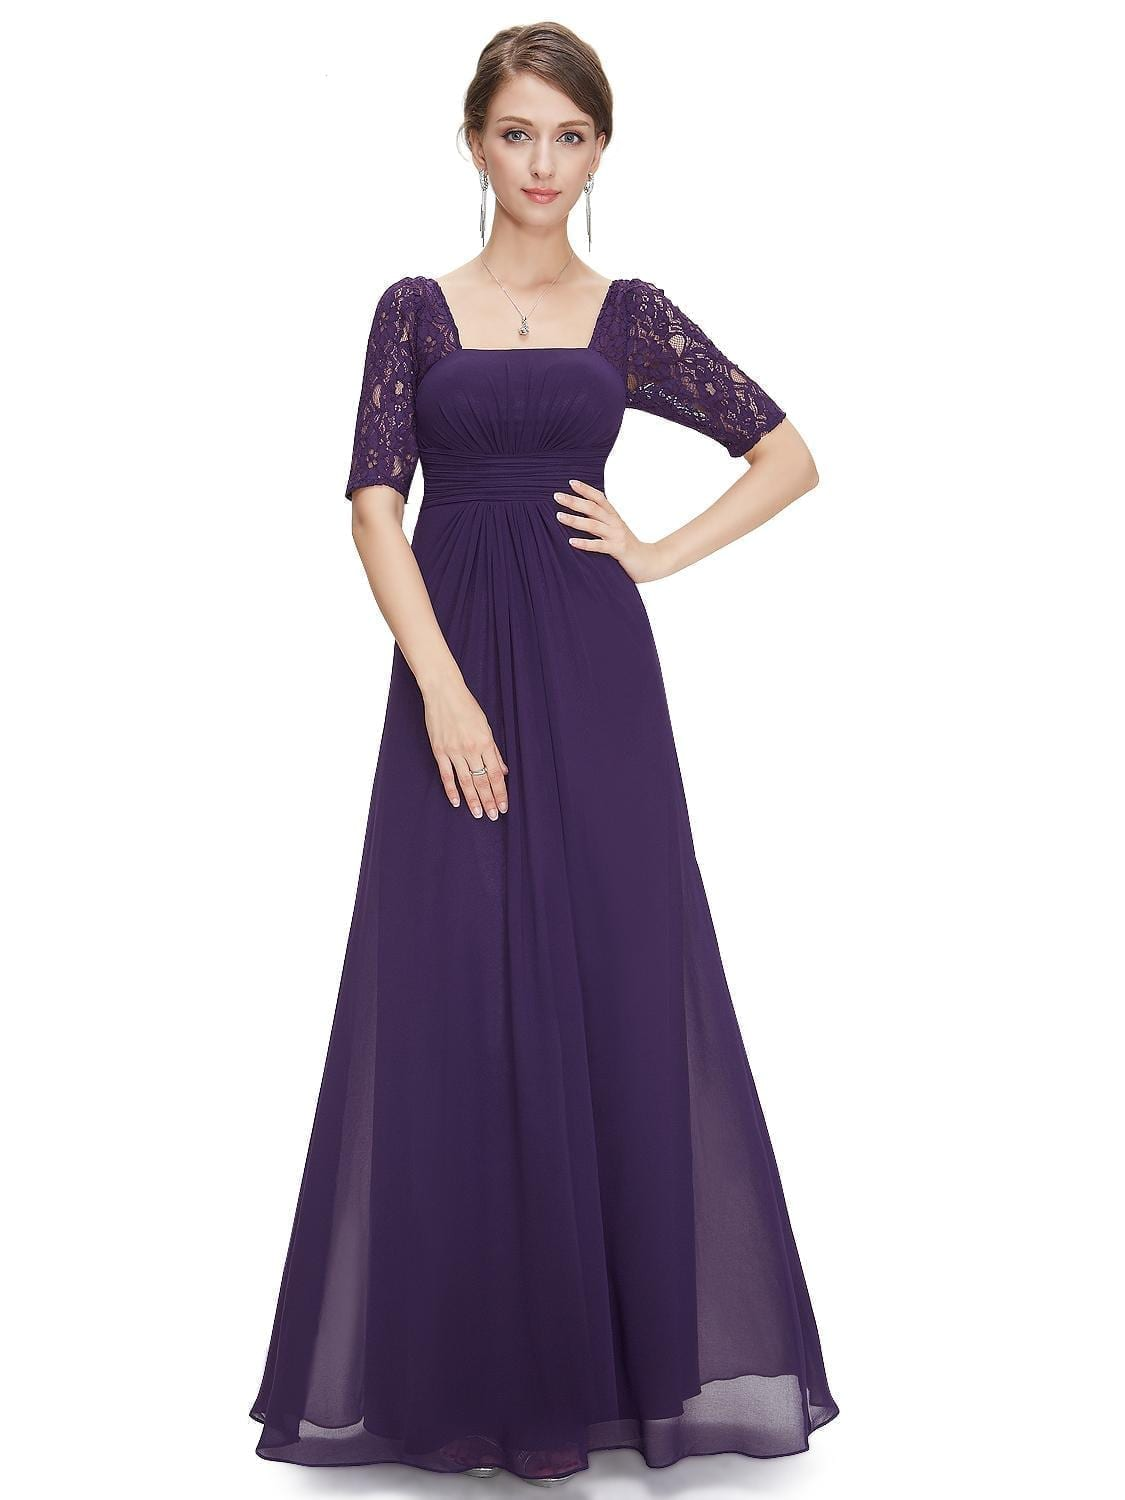 Sexy-fashion-purple-lace-square-neckline-long-prom-evening-dress